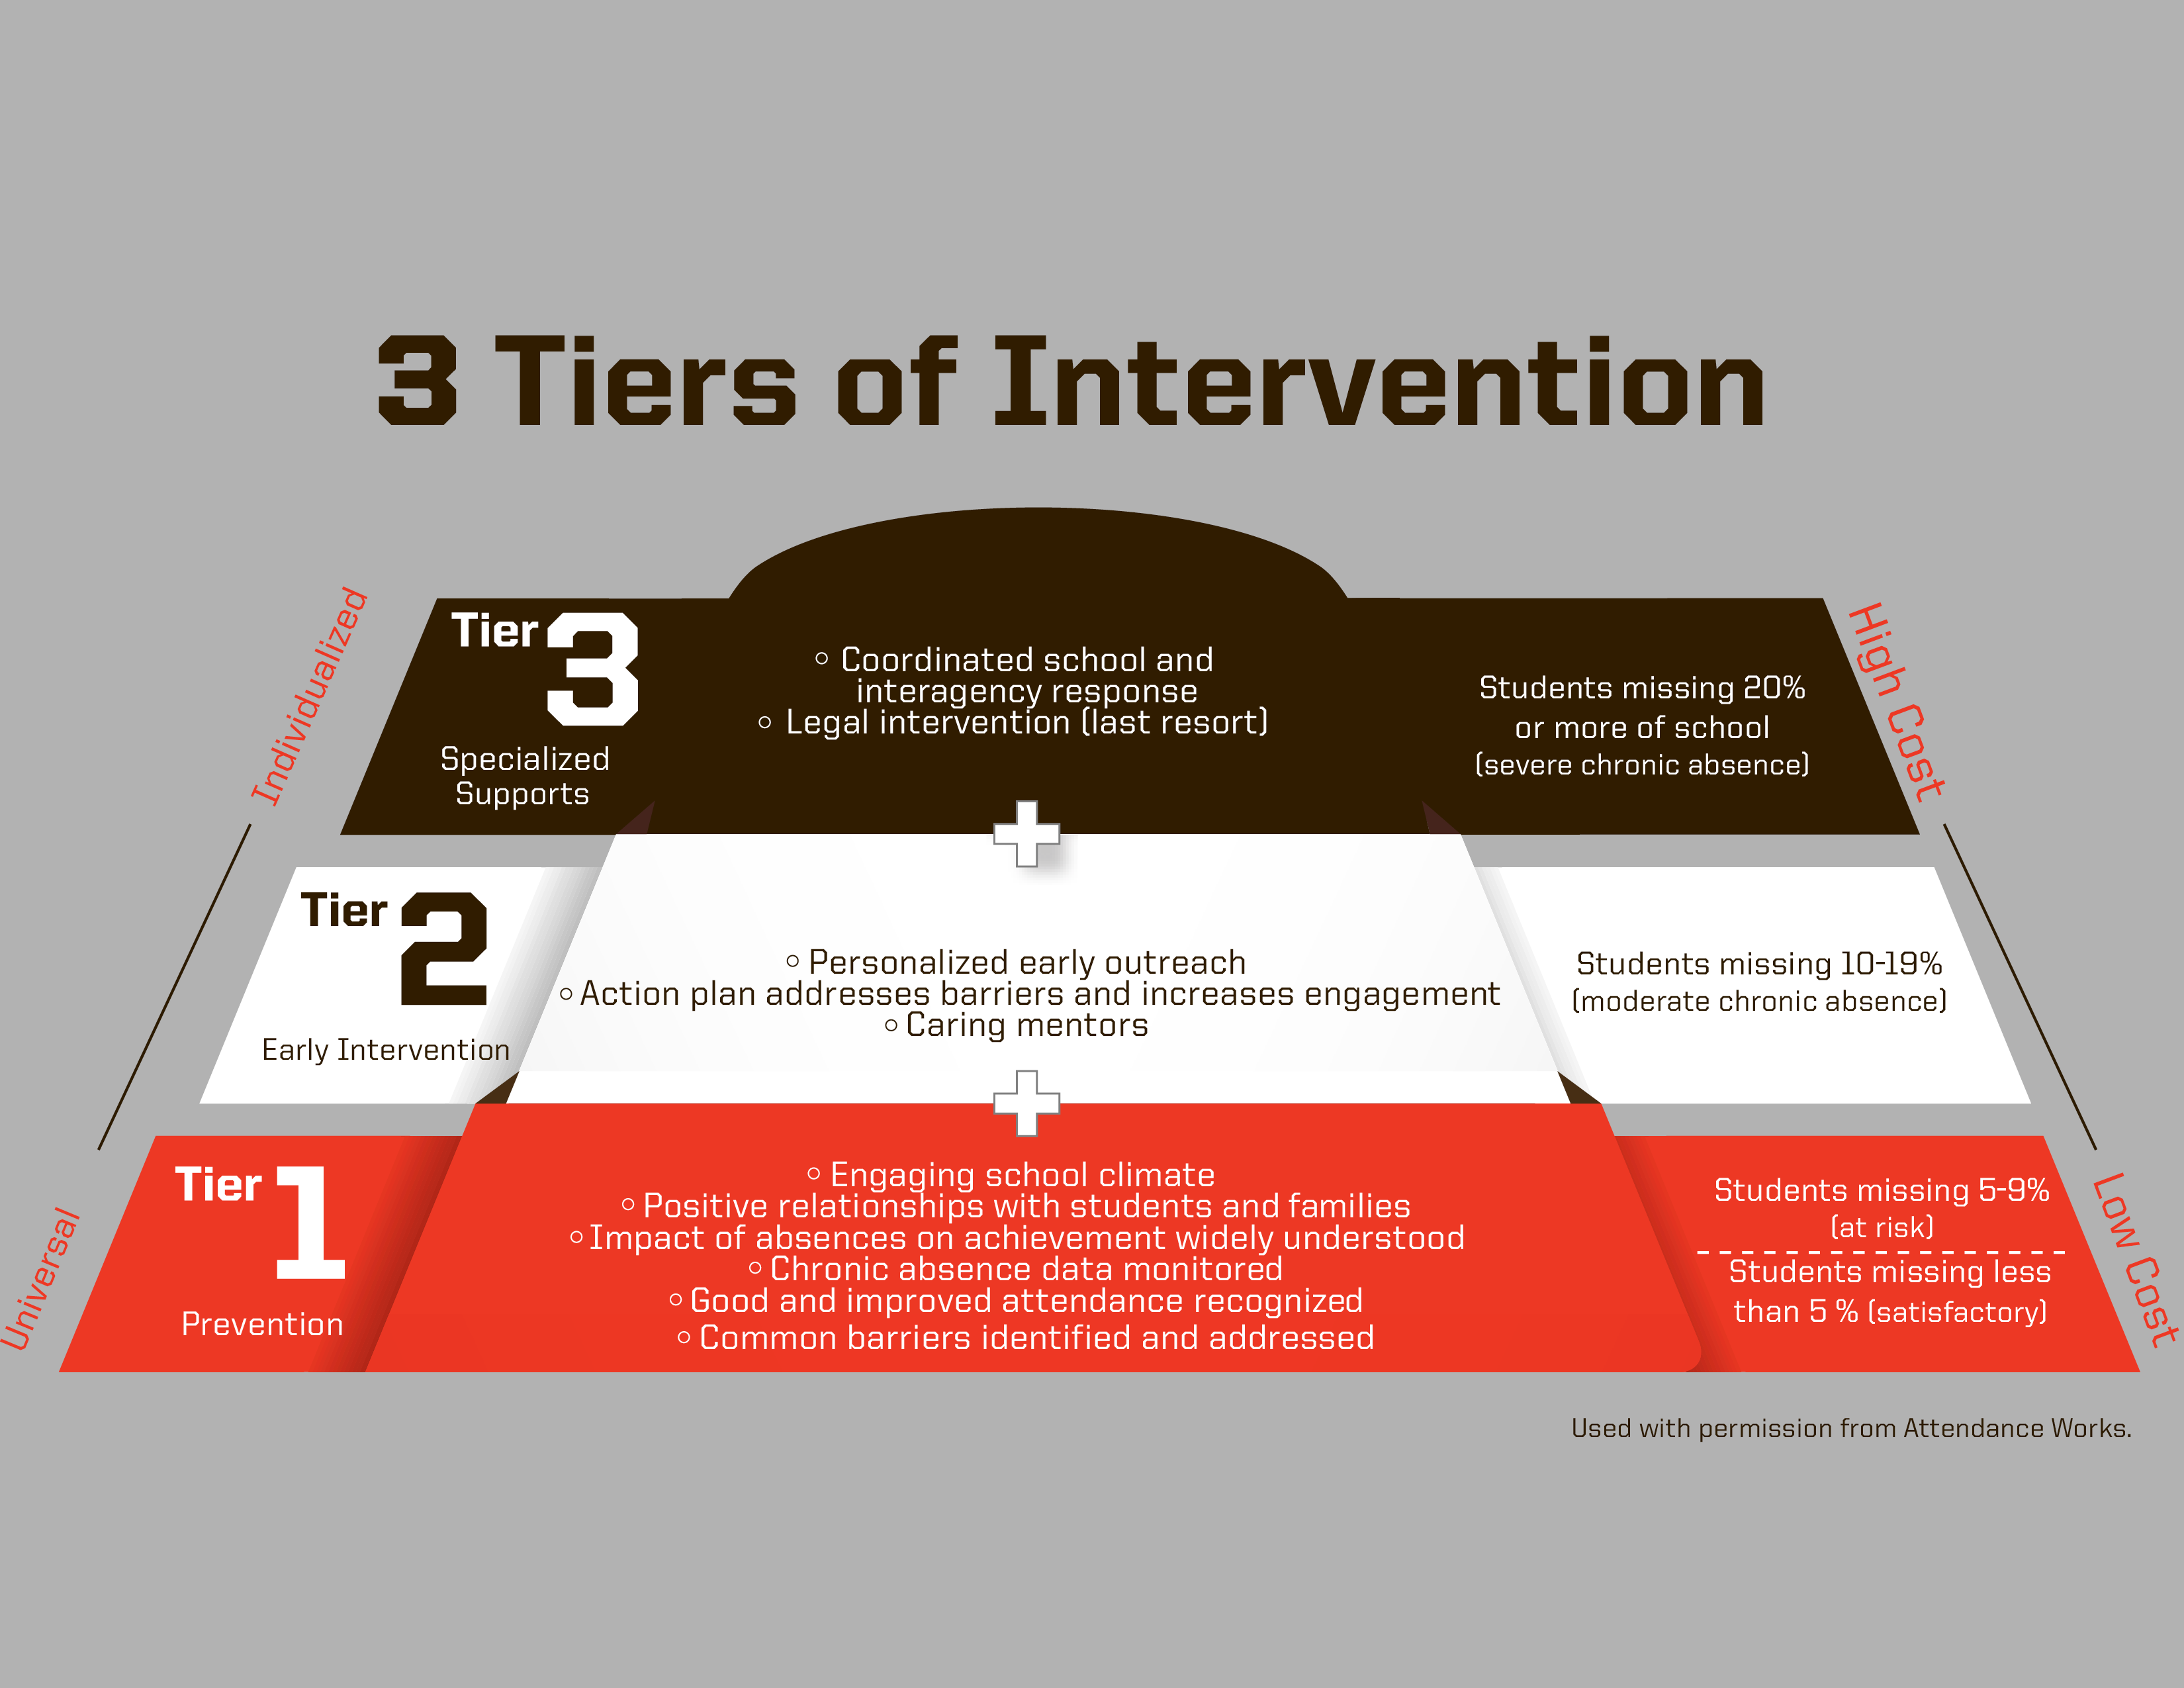 3 Tiers of Intervation